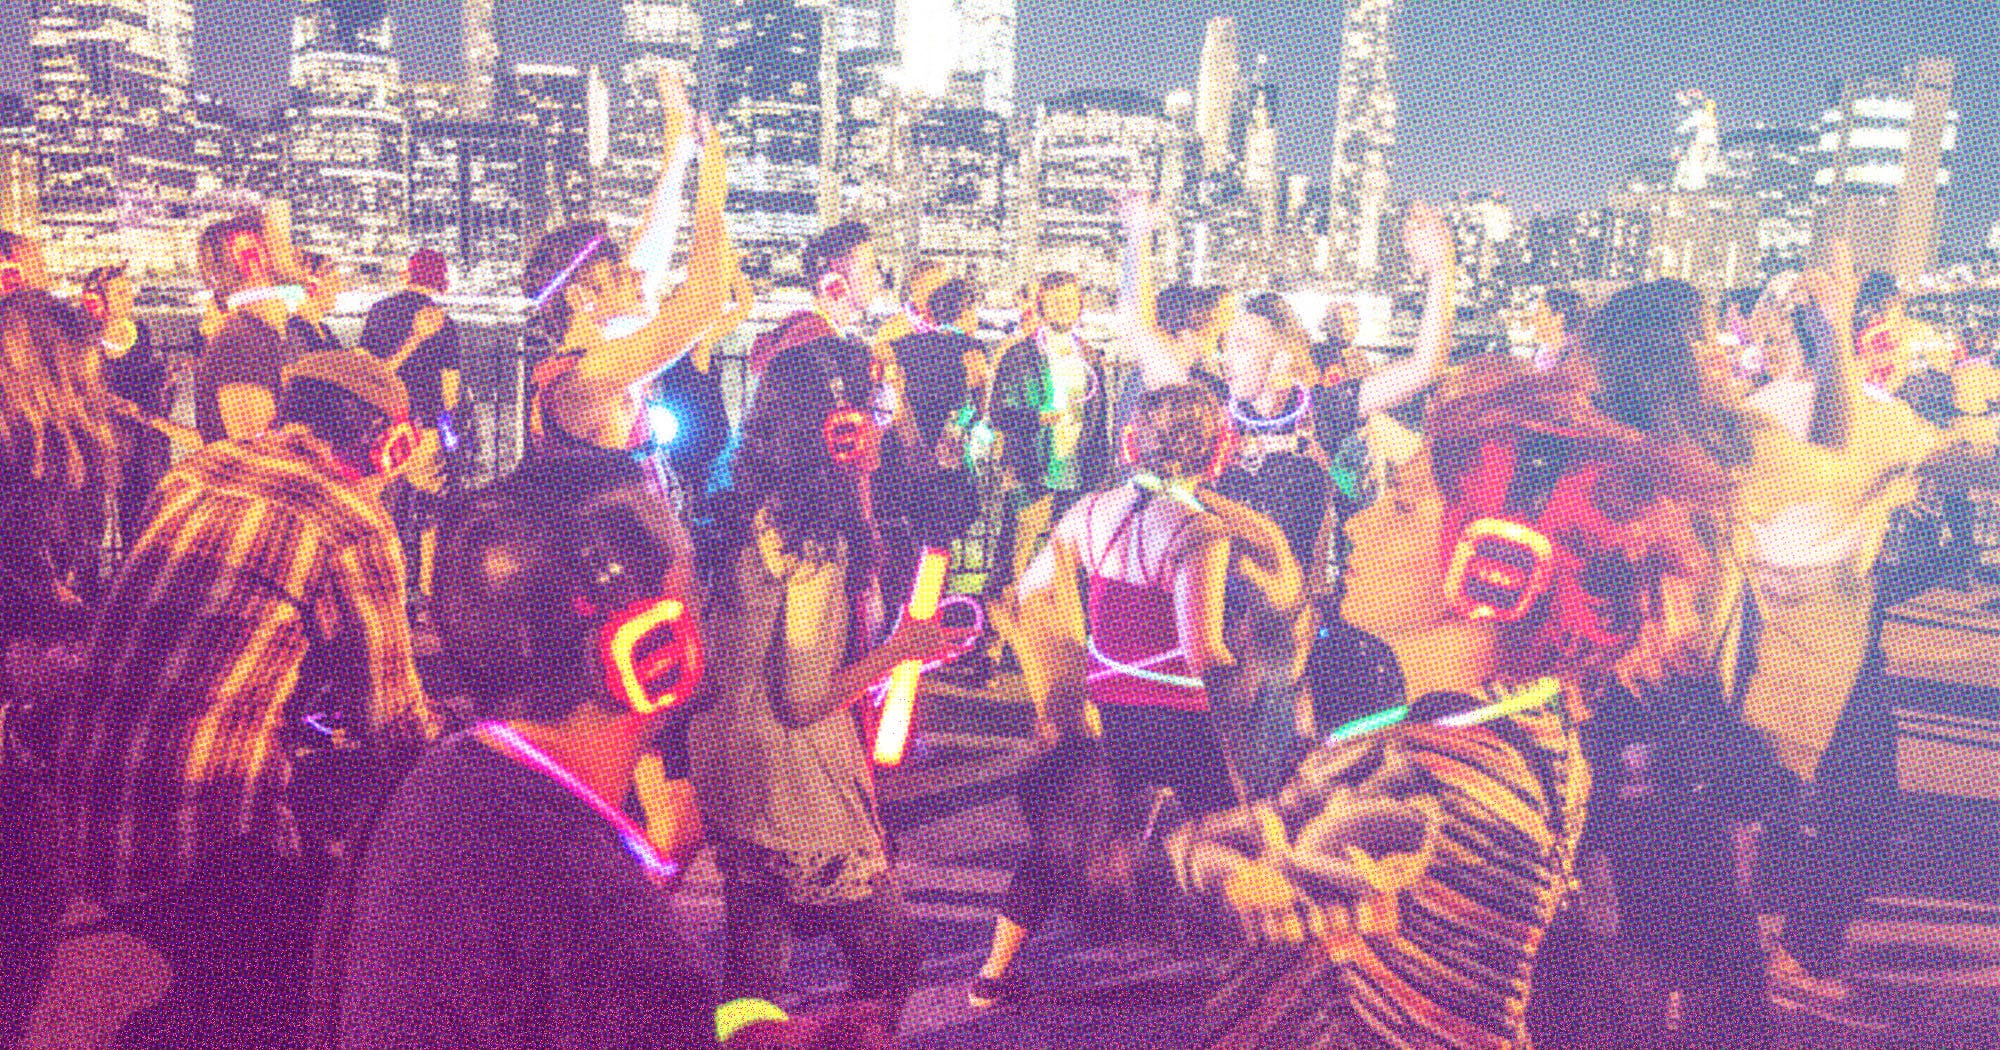 Silent Disco Parties Aren't Just For Fun, They Can Also Help With Social Anxiety